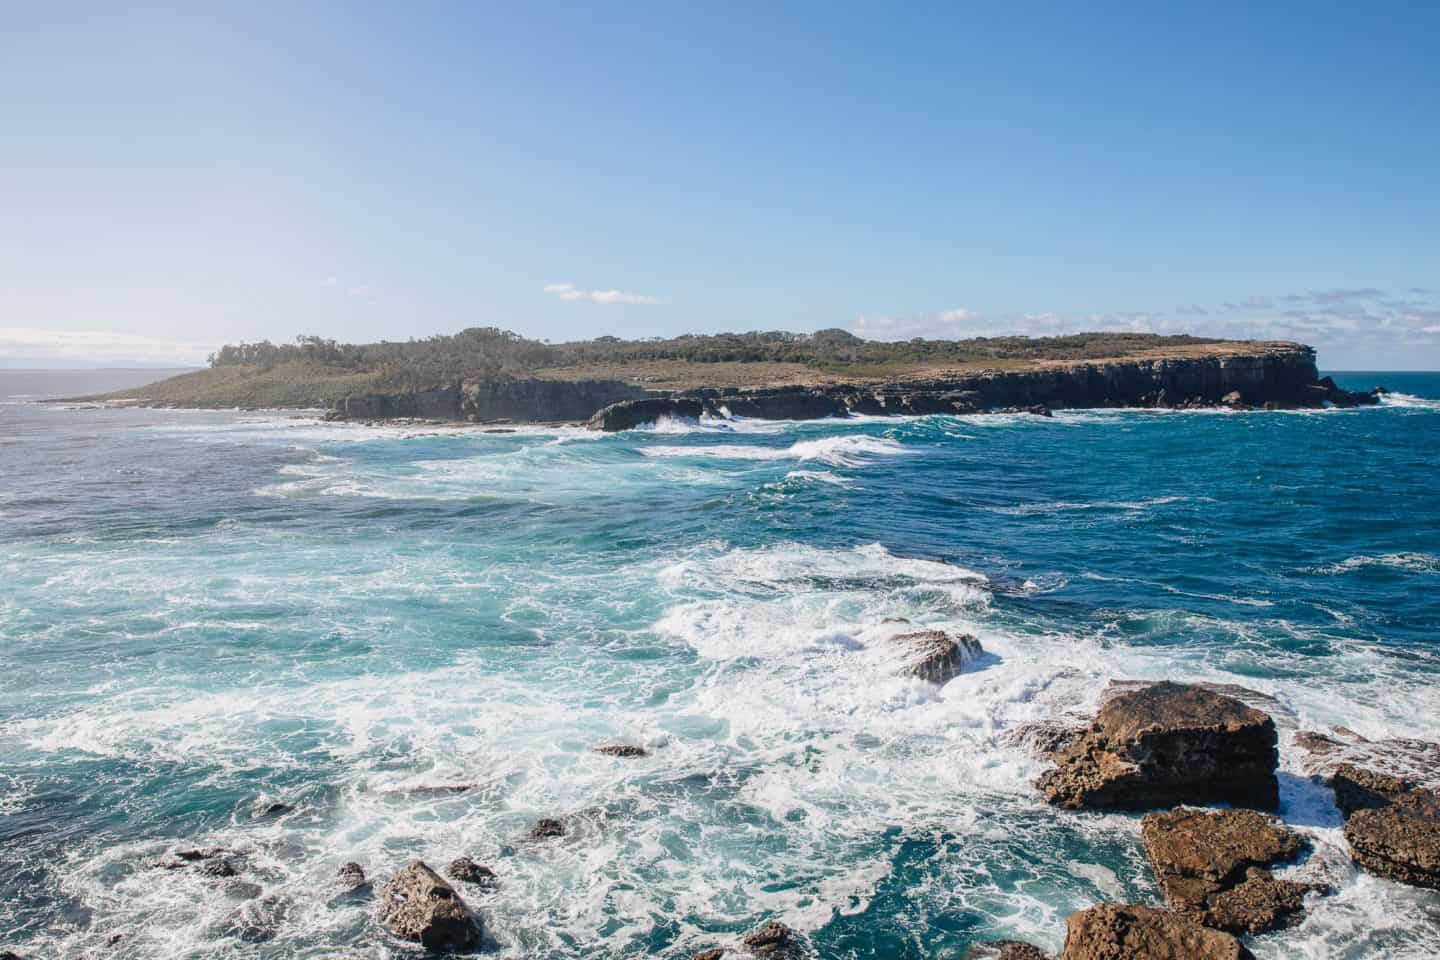 things to do in jervis bay, jervis bay things to do, jervis bay activities, jervis bay attractions, jervis bay camping, jervis bay holiday park, things to do jervis bay, things to do at jervis bay, what to do in jervis bay, beaches in jervis bay, accommodation in jervis bay, beaches at jervis bay, governor head lookout